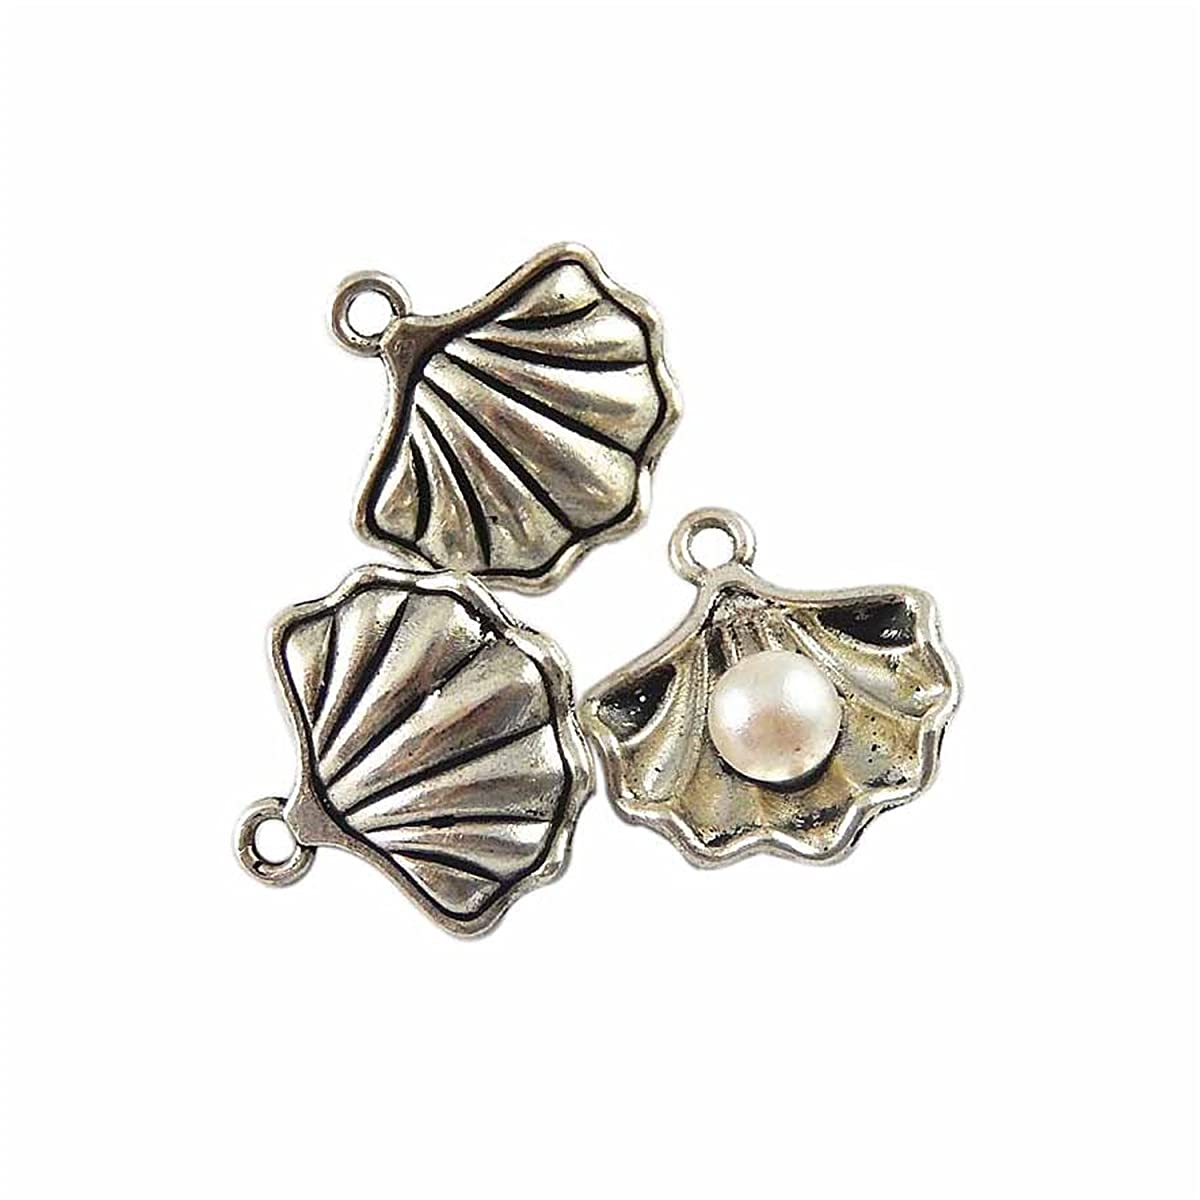 JulieWang 40pcs Antiqued Pearl in Shell Conch Charms Pendants for Jewerly Making (Antiqued Silver)